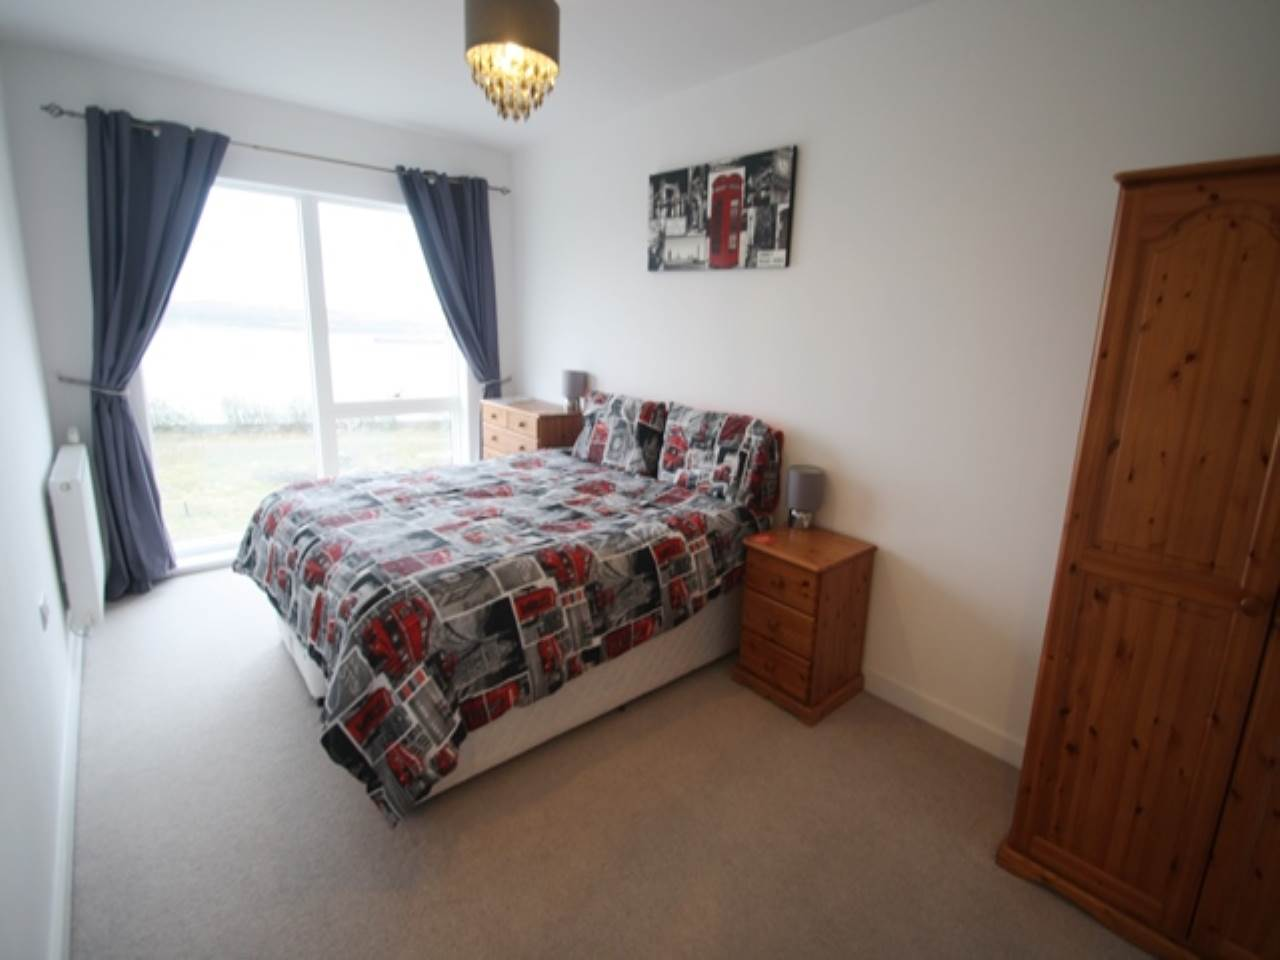 2 bed flat to rent in Royal Docks - Property Image 1